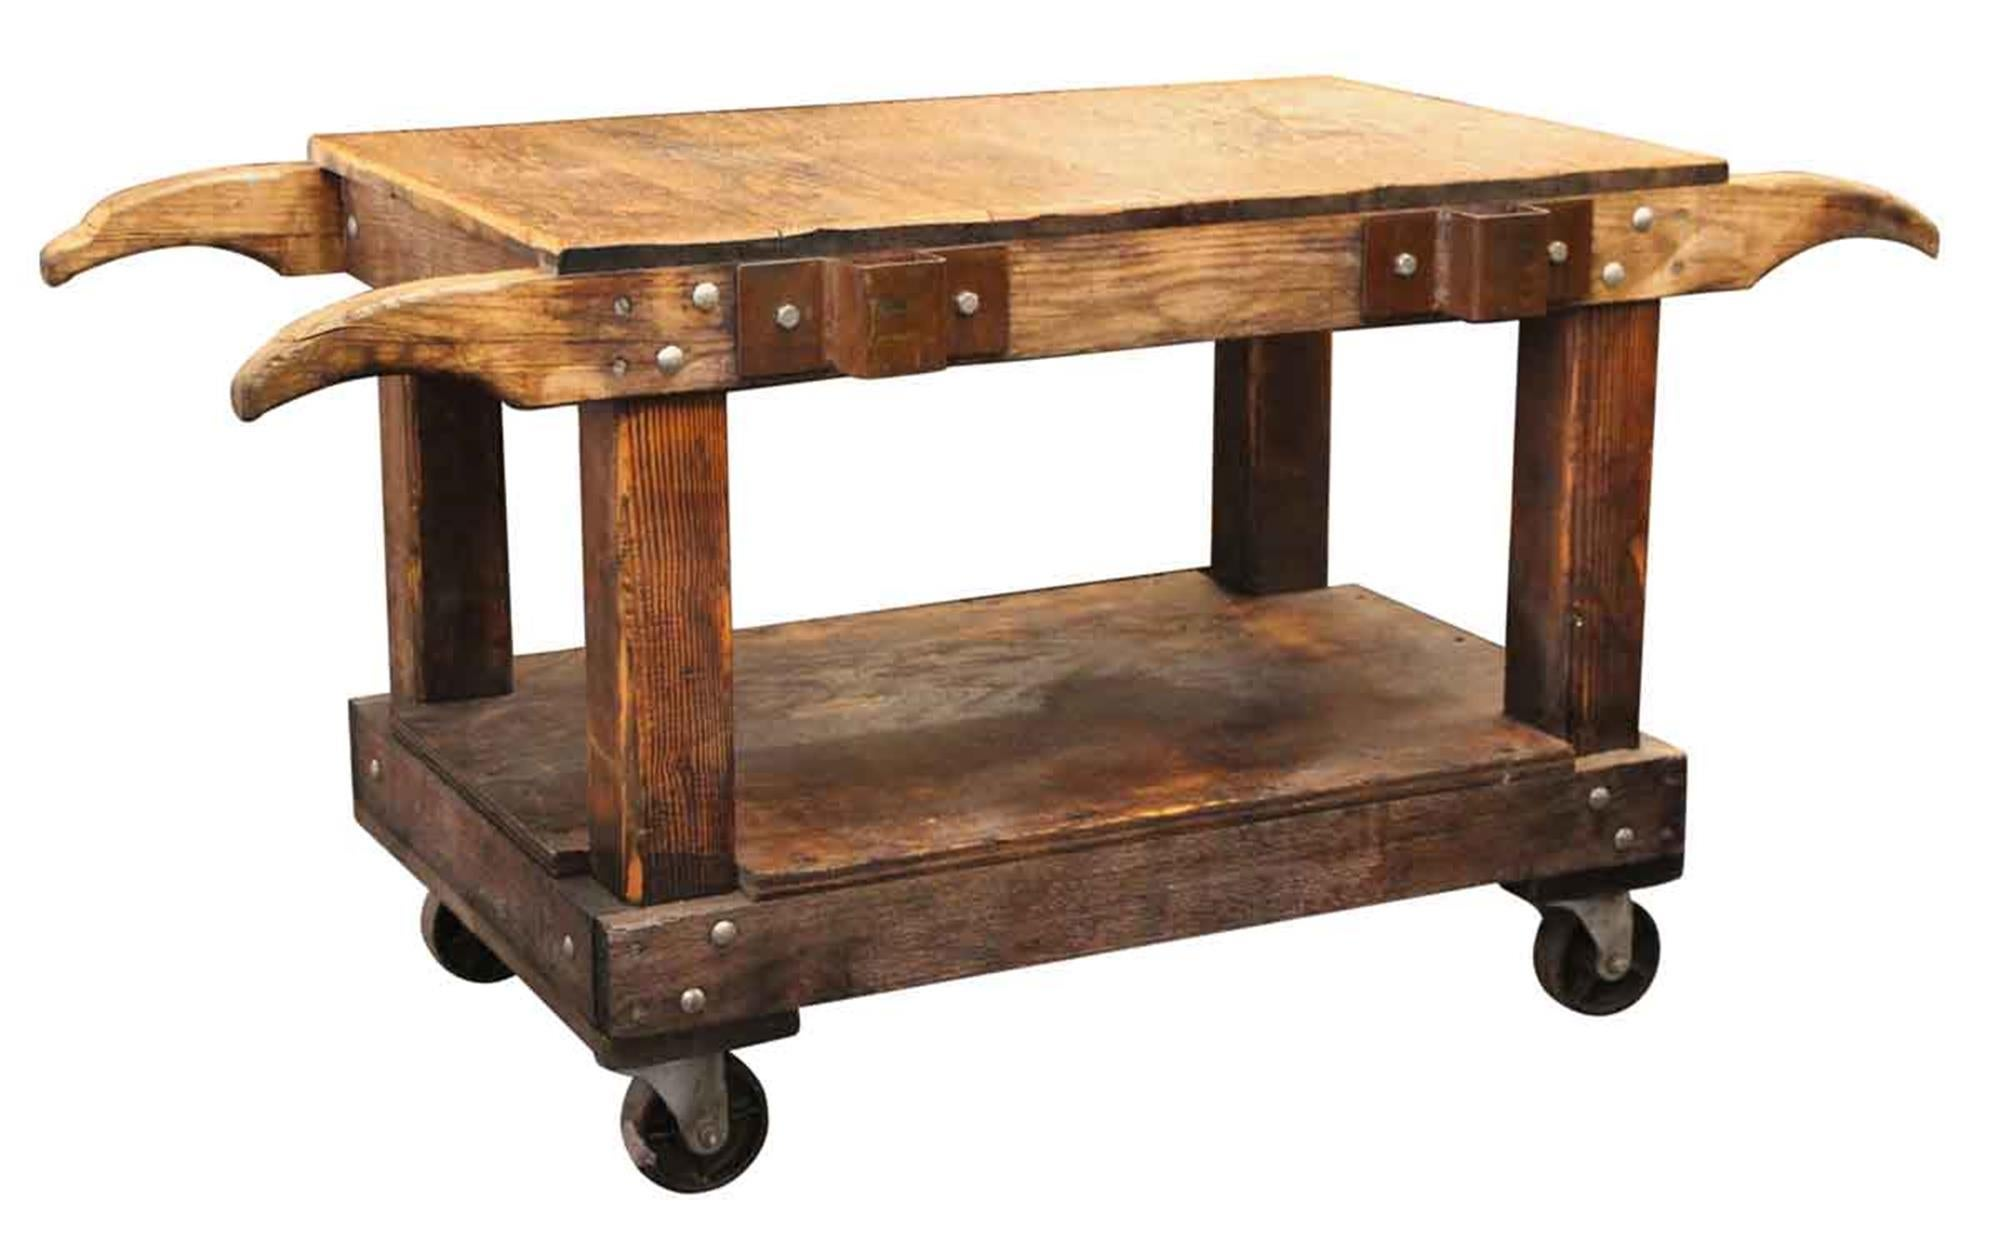 Kücheninsel Oval Wooden Industrial Cart Turned Kitchen Island Or Table Or Counter